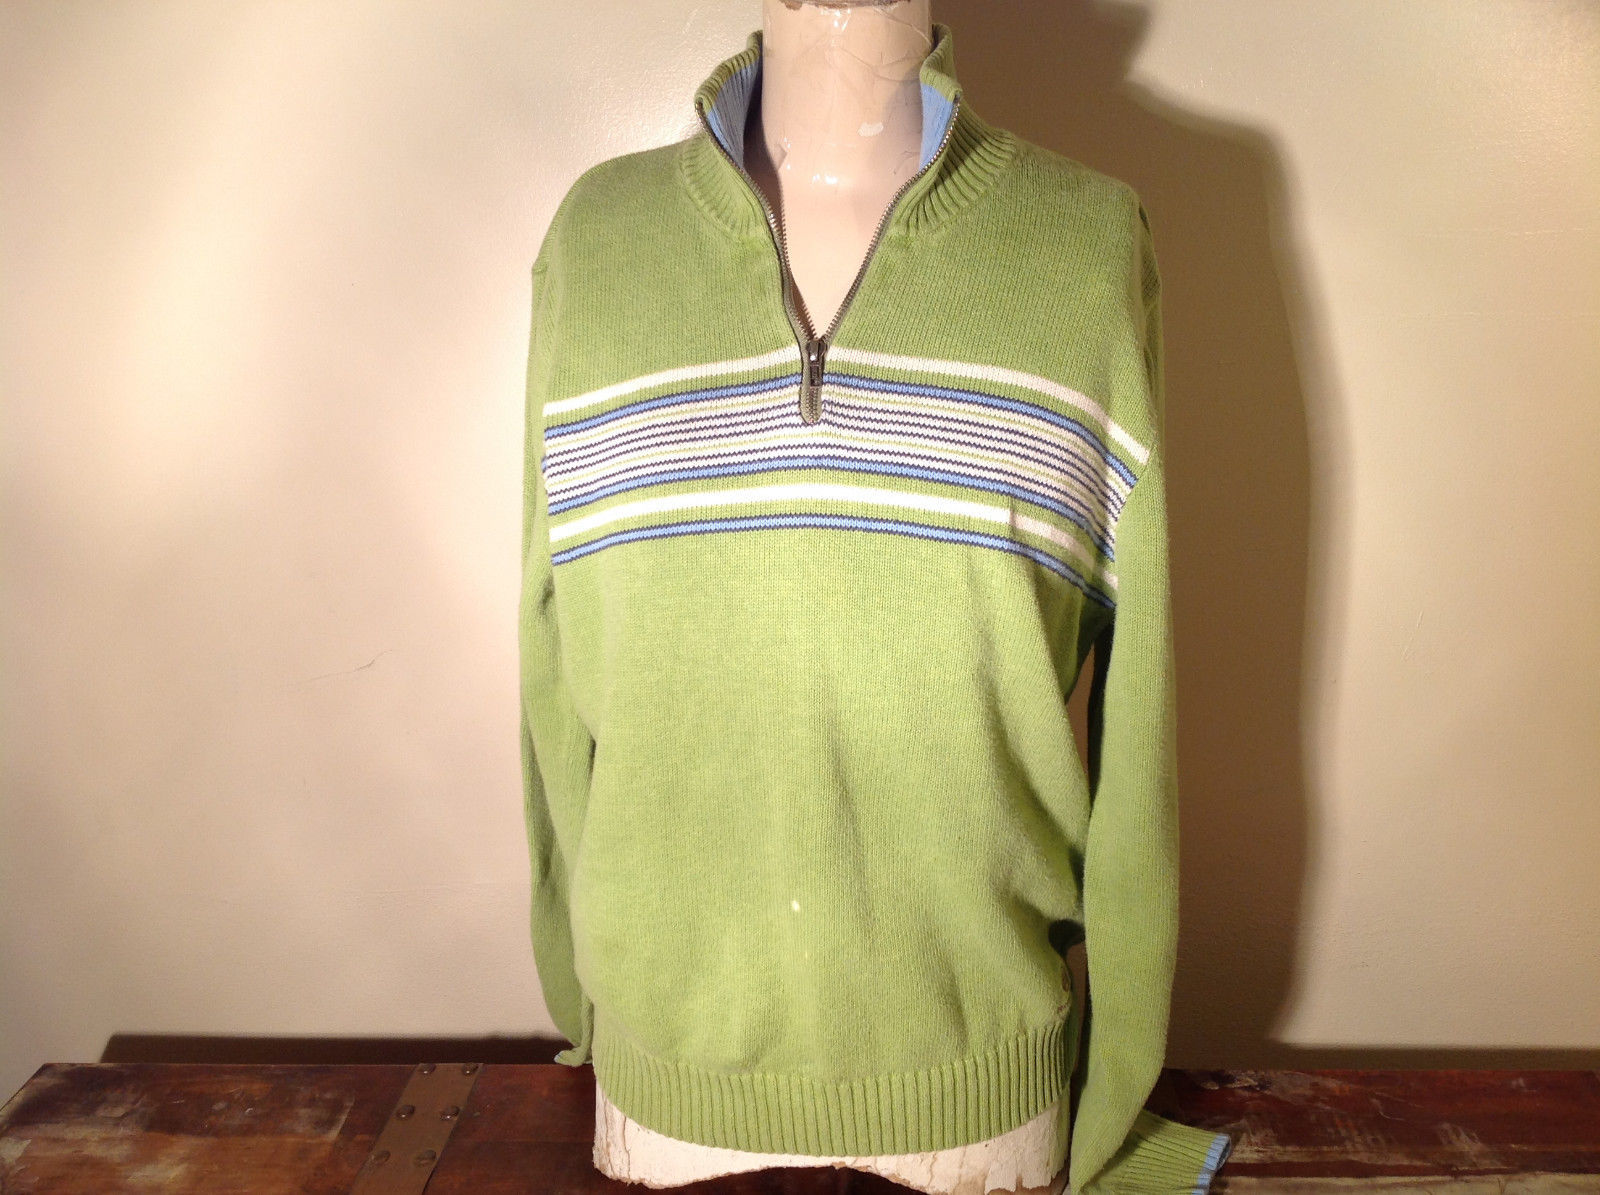 Green with Stripes Hollister Sweater Zip Neck Closure Light Blue Accents Size L